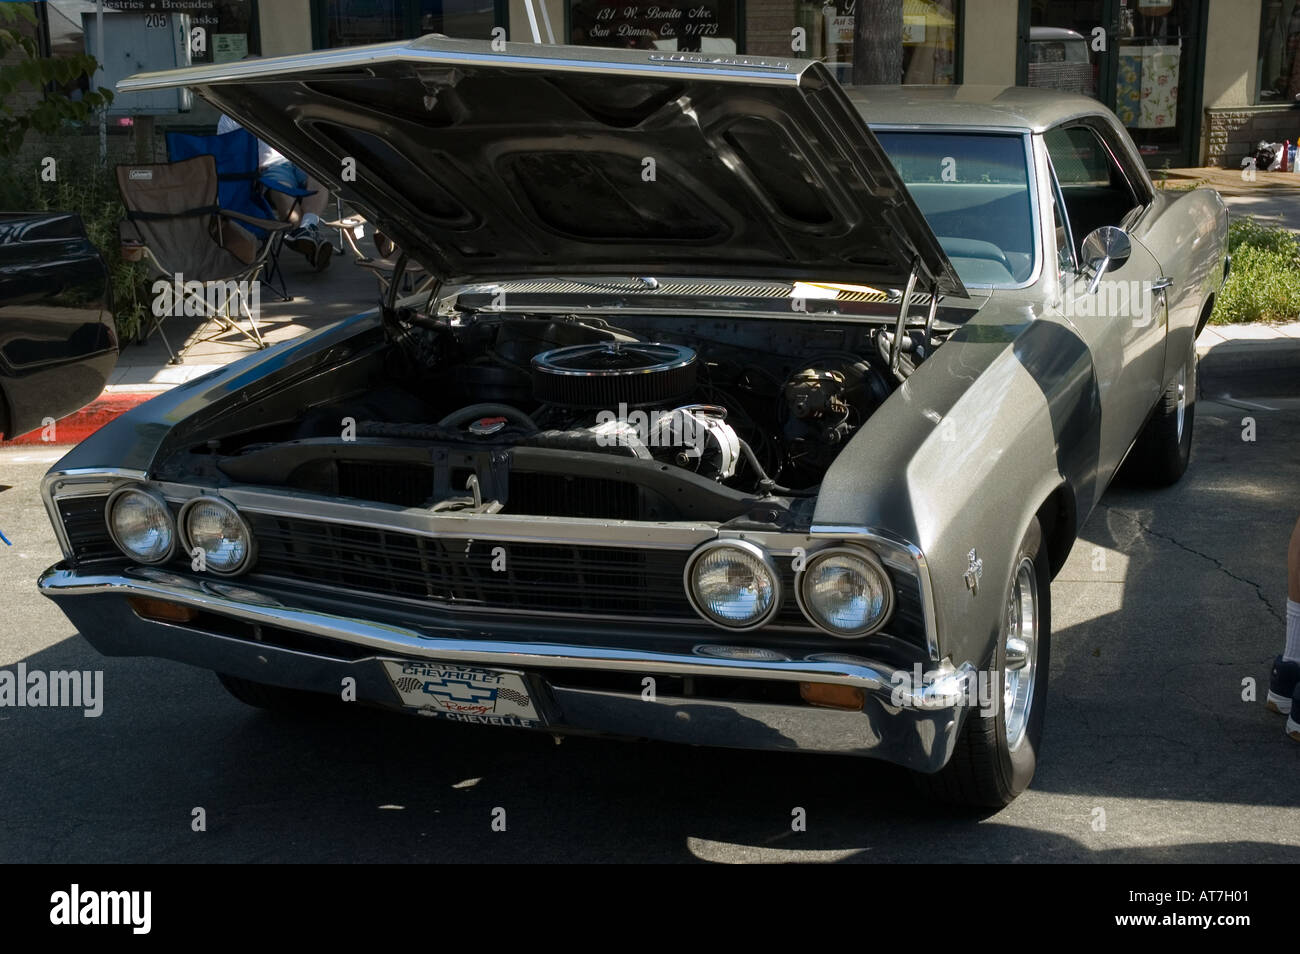 All Chevy chevy 1967 Los Angeles California car show antique customized Chevrolet Chevy ...